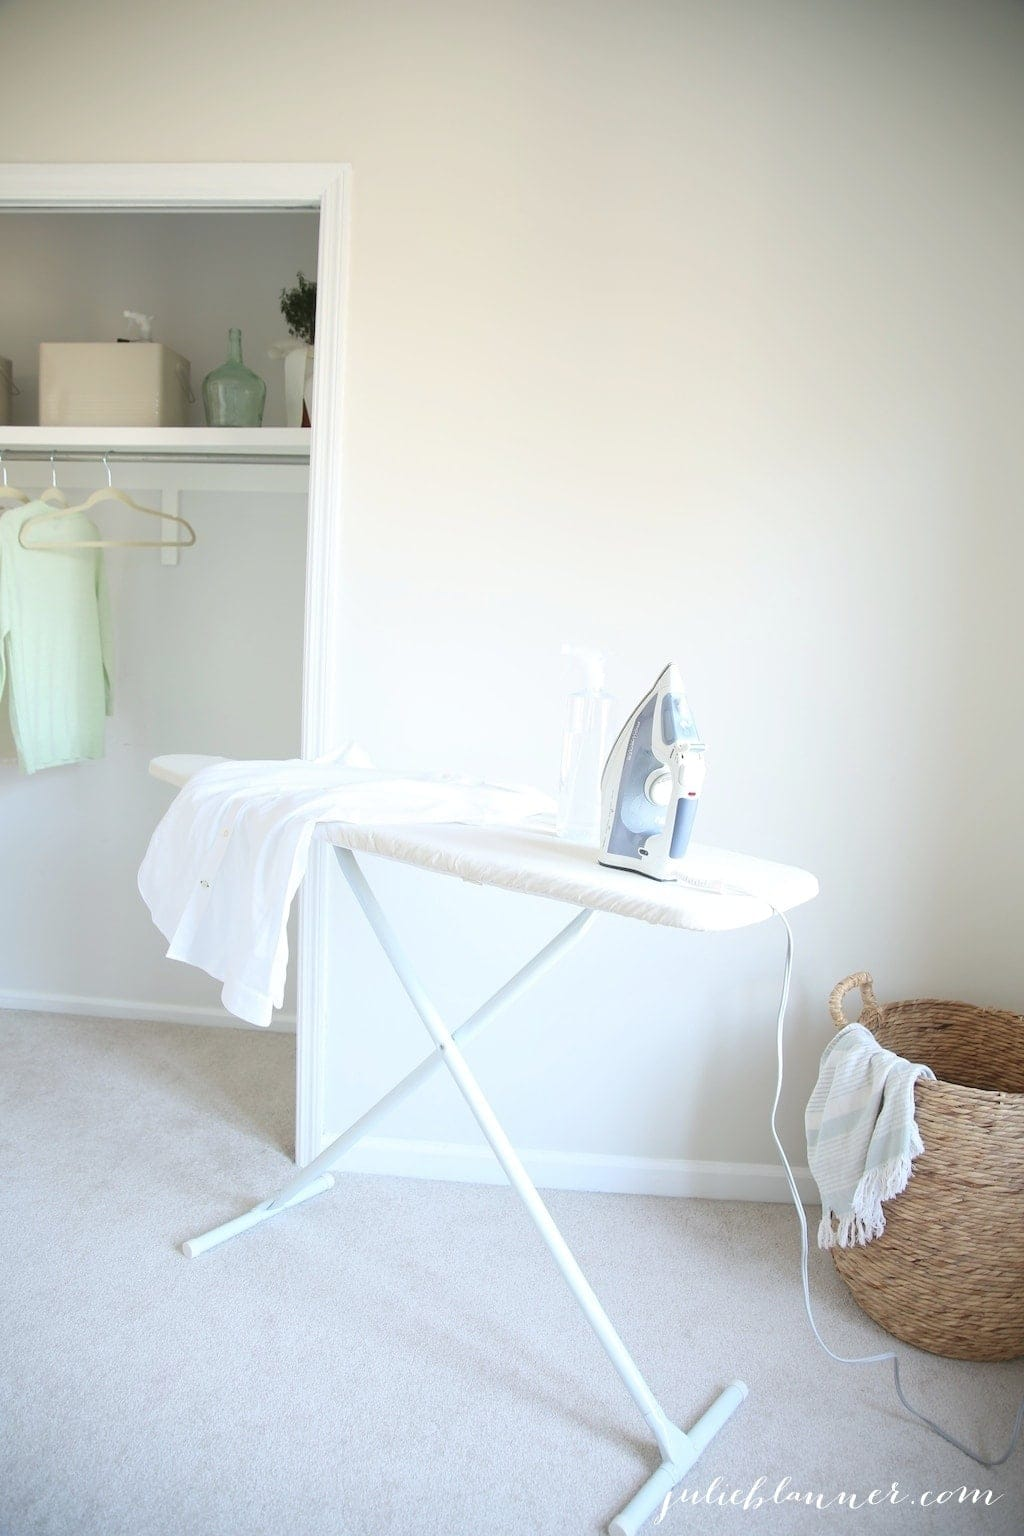 Laundry room storage solutions - Ironing board solutions for small spaces ideas ...